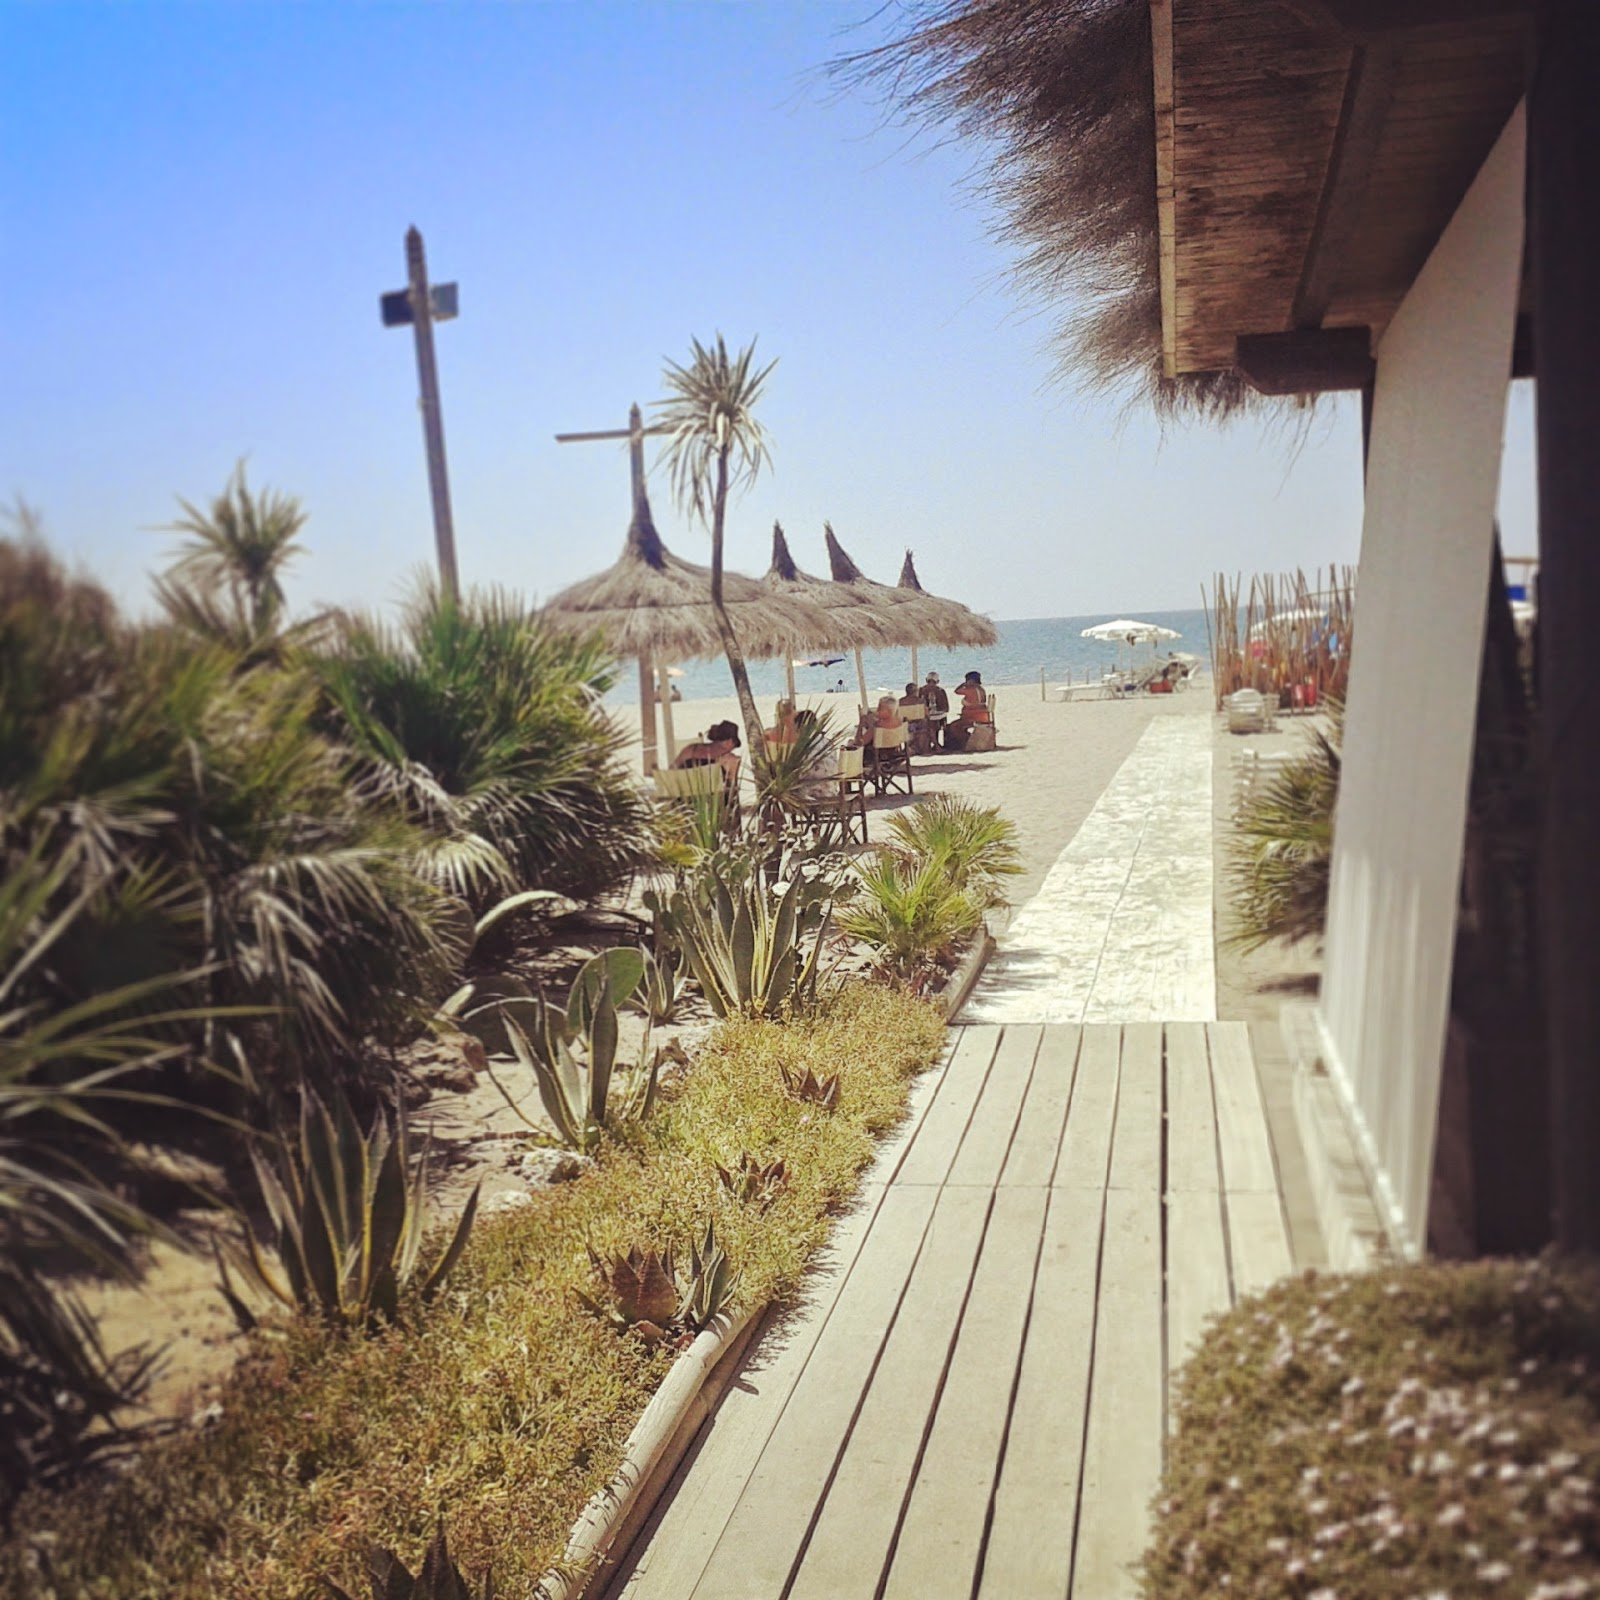 View of palms and tables on the beach at restaurant Fiumara